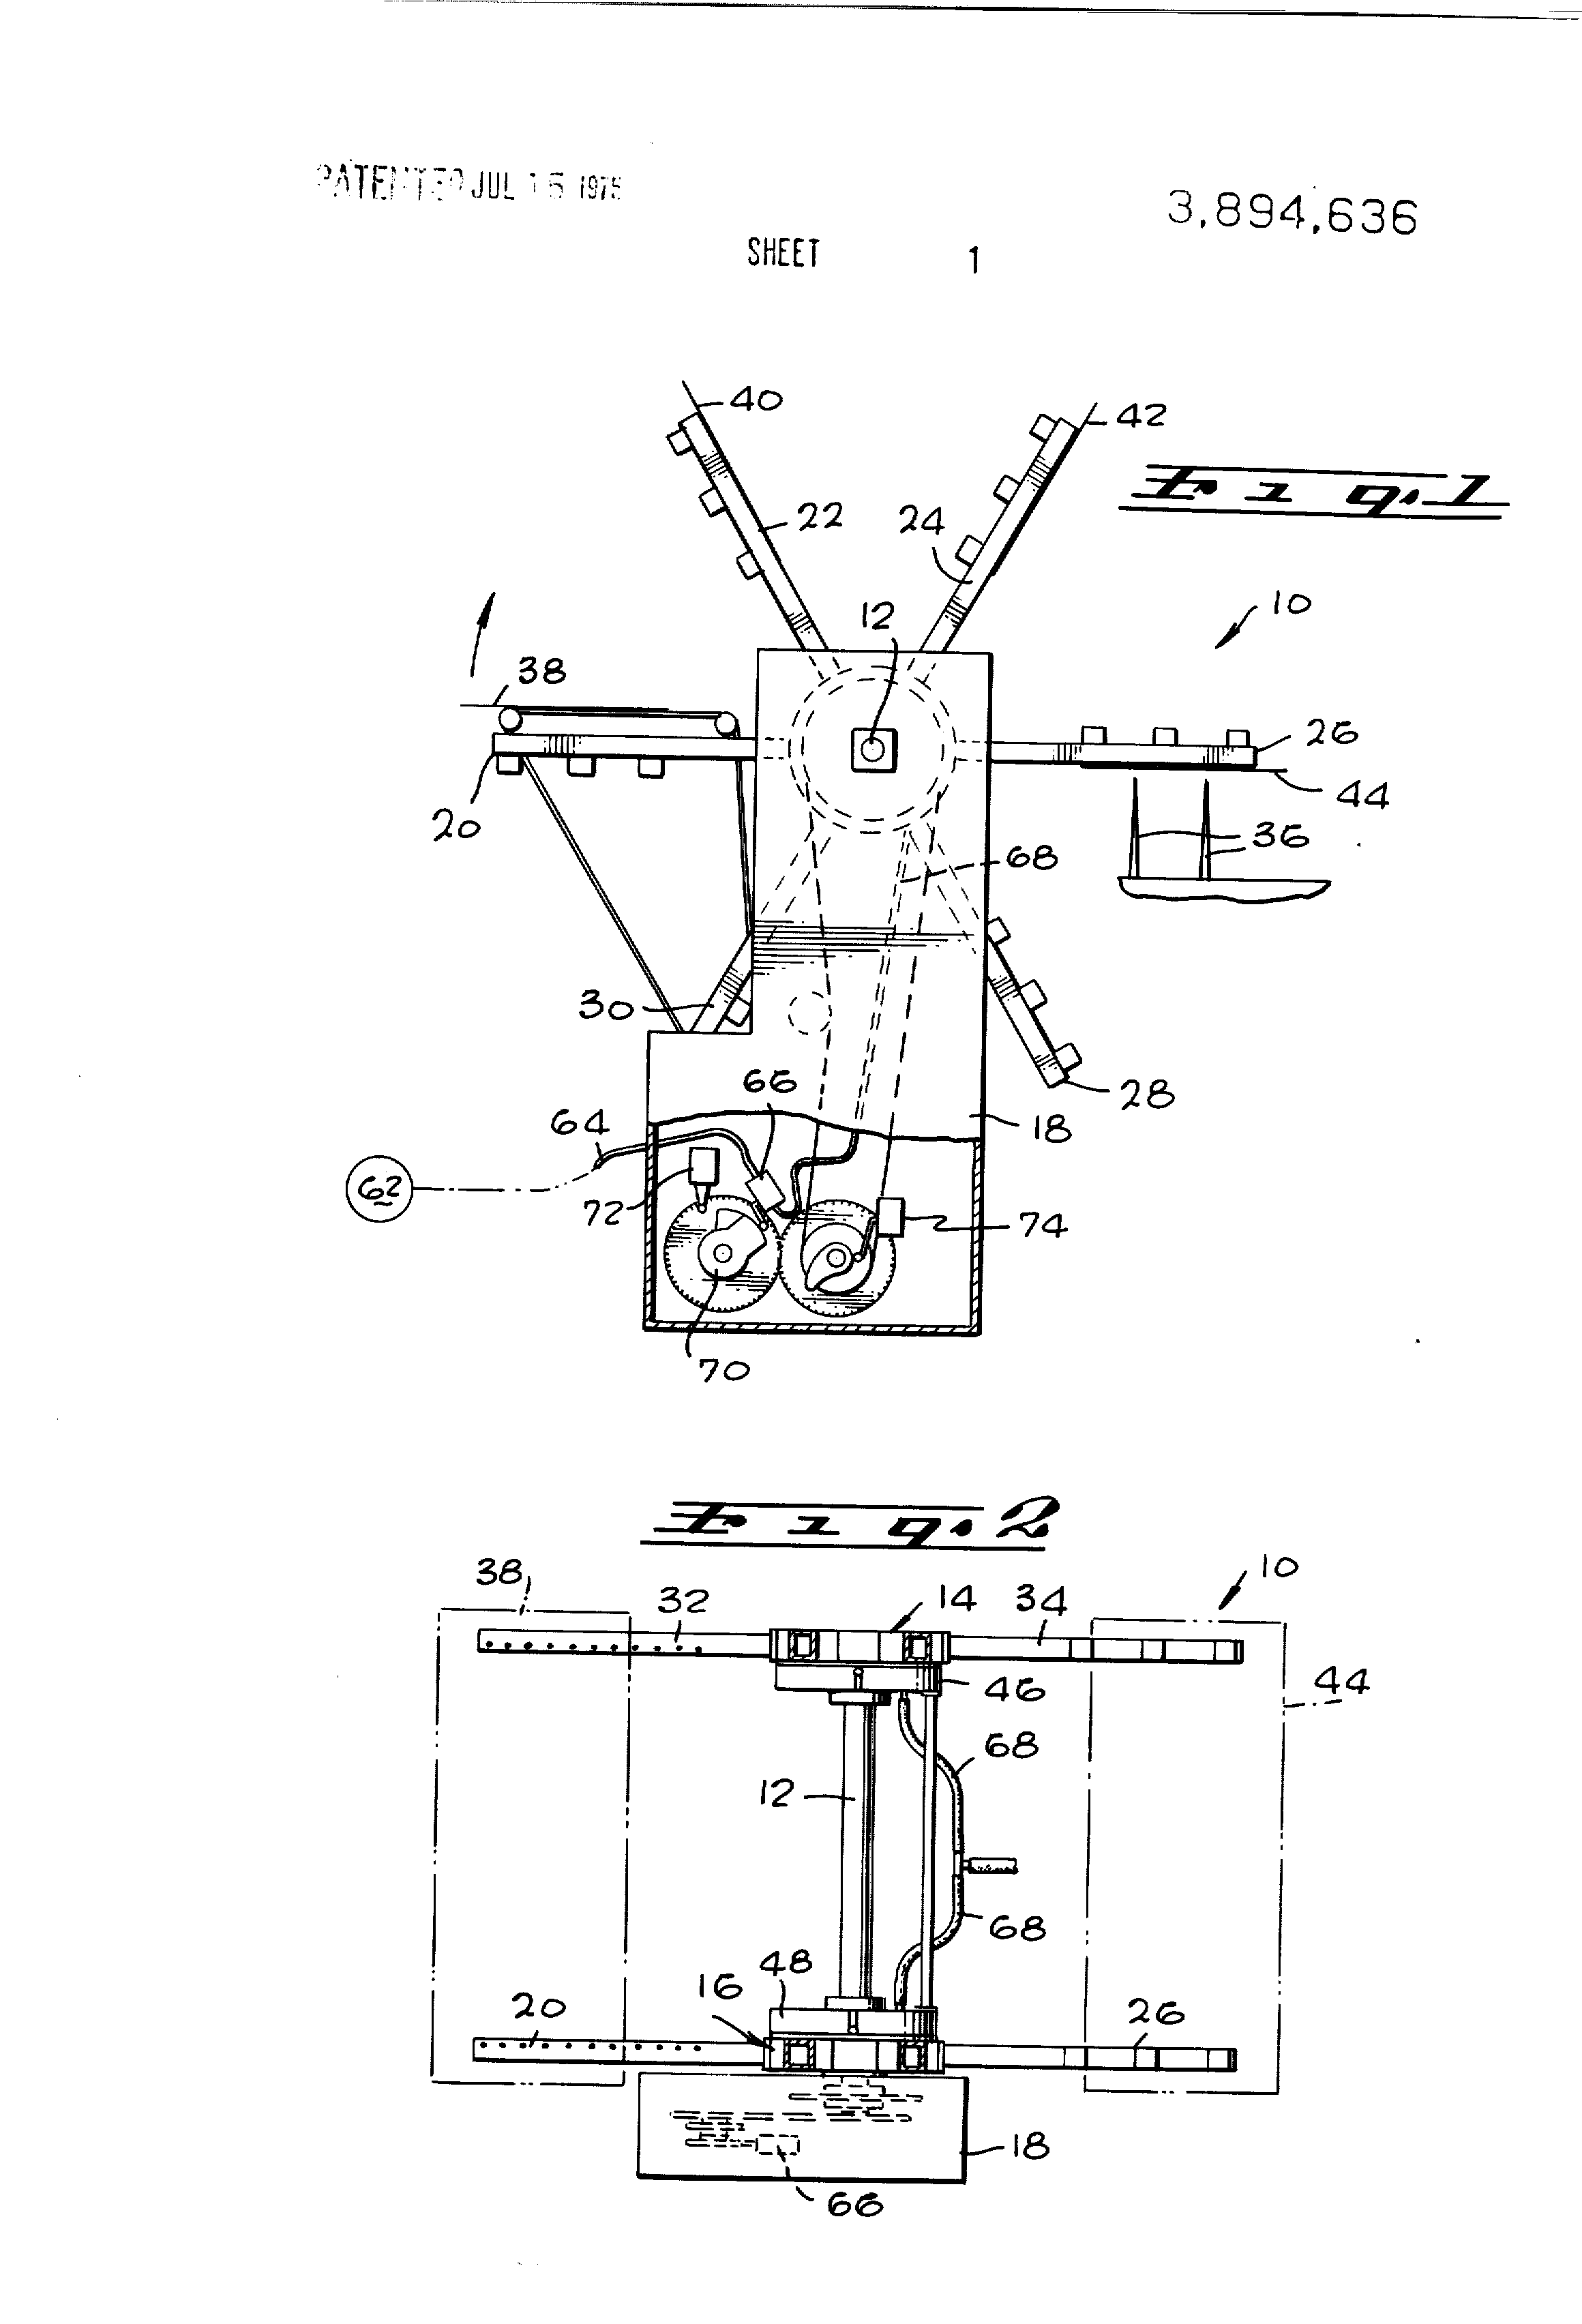 Brevet US3894636 - Air control for bag-stacking machine arms